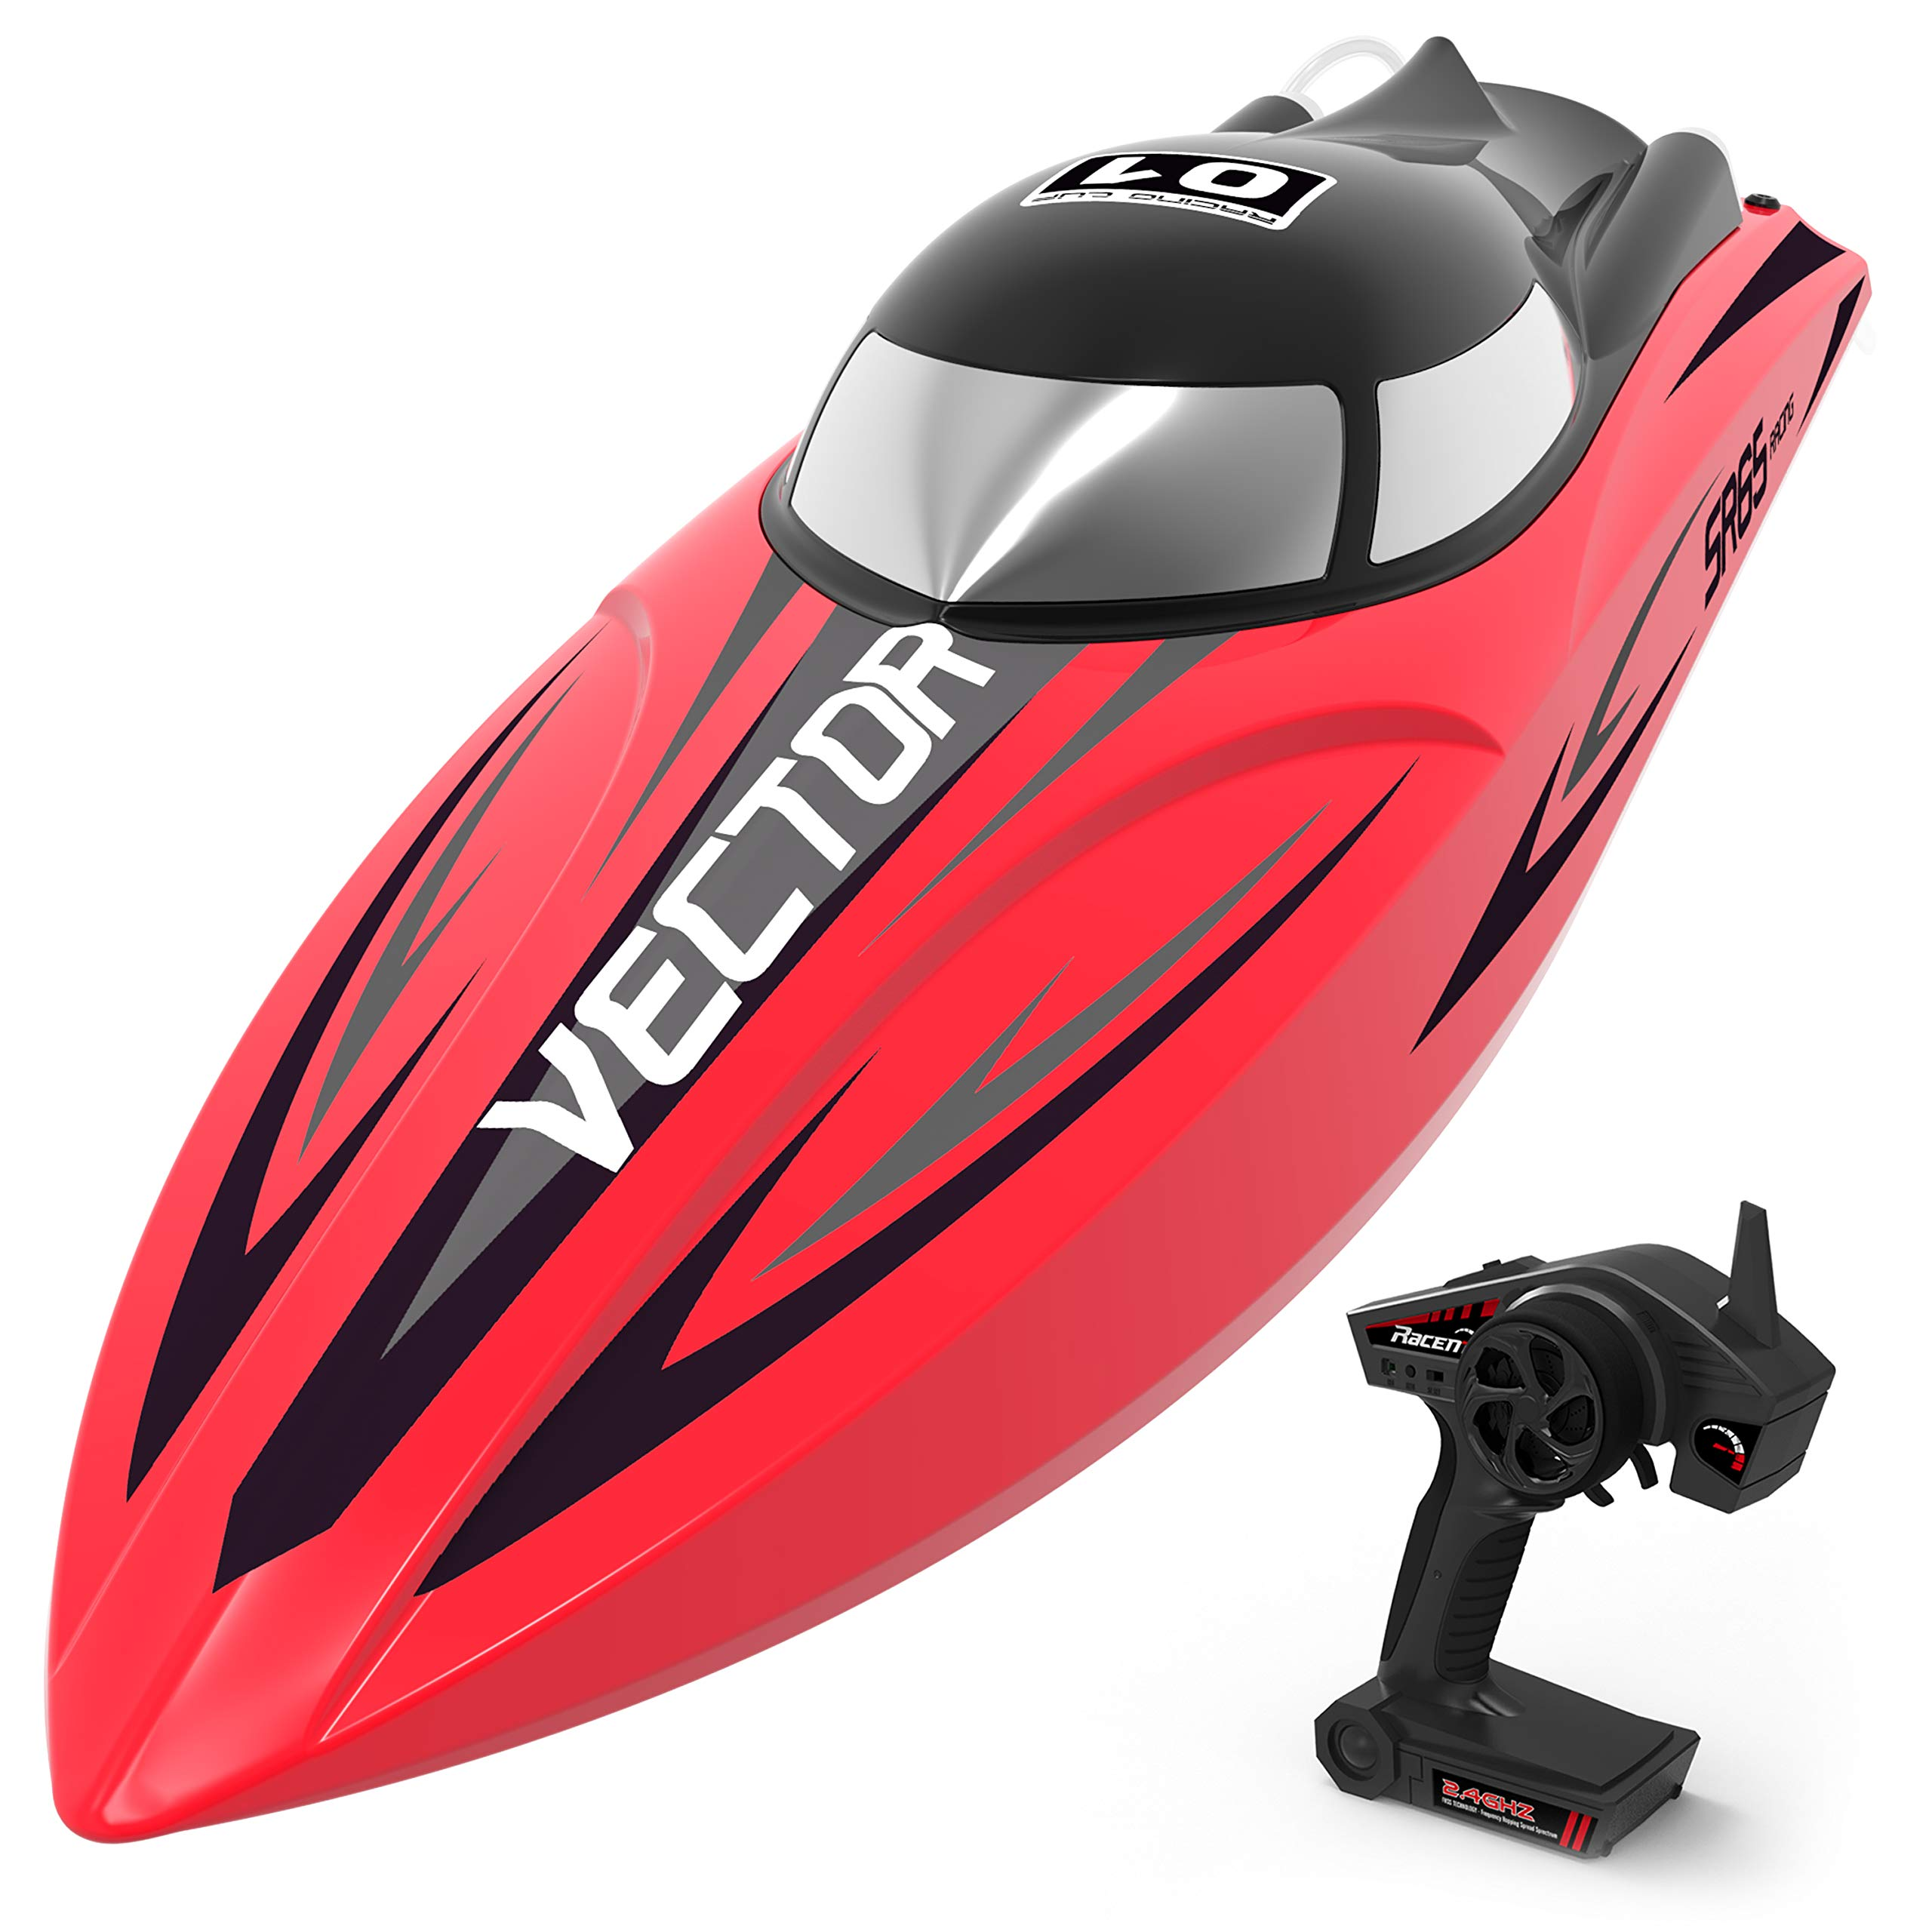 VOLANTEXRC Brusheless RC Boat 55km/h High Speed Remote Control Boat Vector SR65 with Self-Righting, Reverse Function in Lakes & Rivers for Kids and Adults, Boys or Girls (792-5 RTR Red)